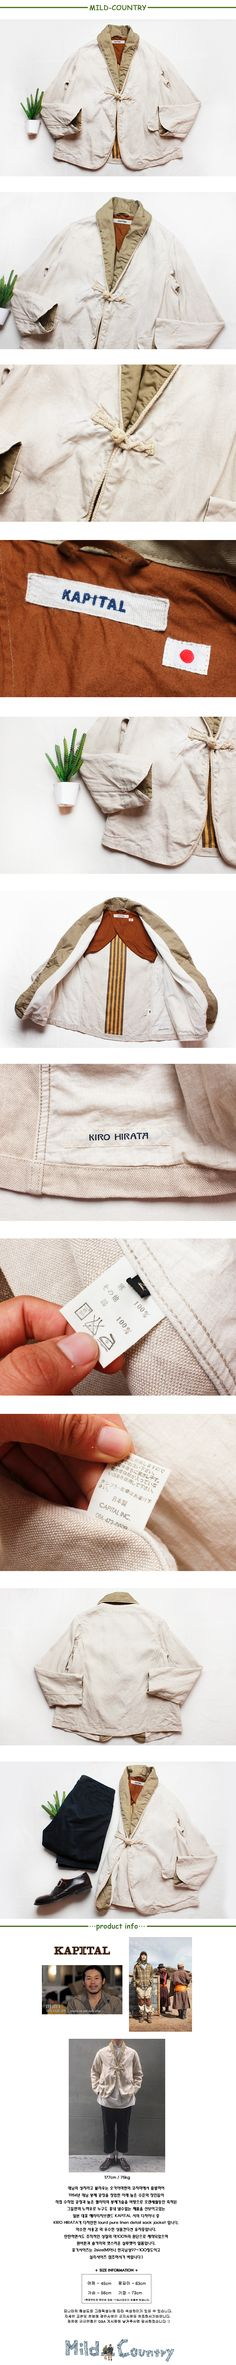 Kapital by KIRO HIRATA lourd pure linen detail jacket(made in Japan)